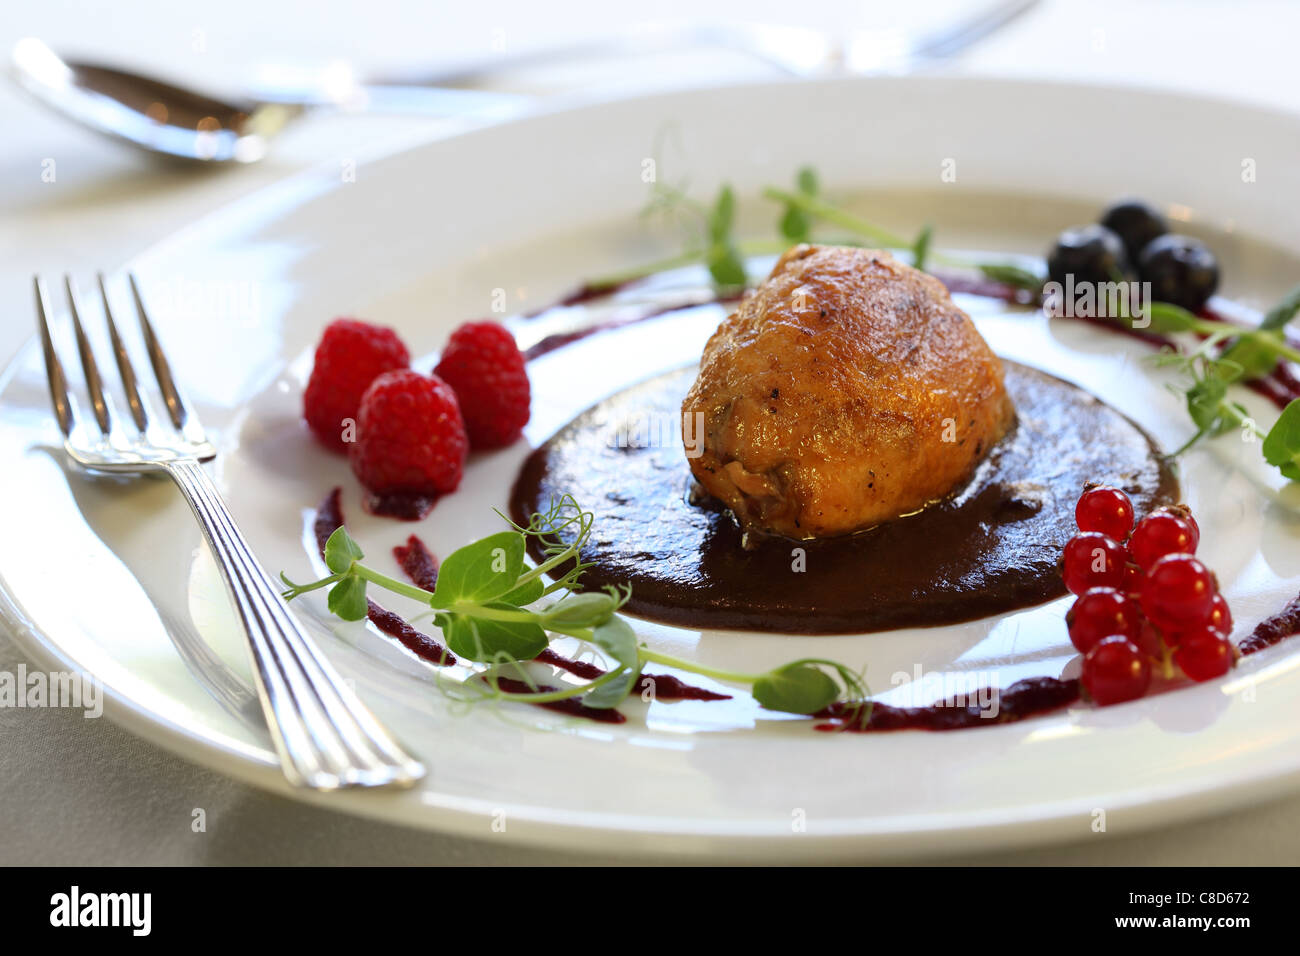 chicken roll with chocolate souse and berries - Stock Image